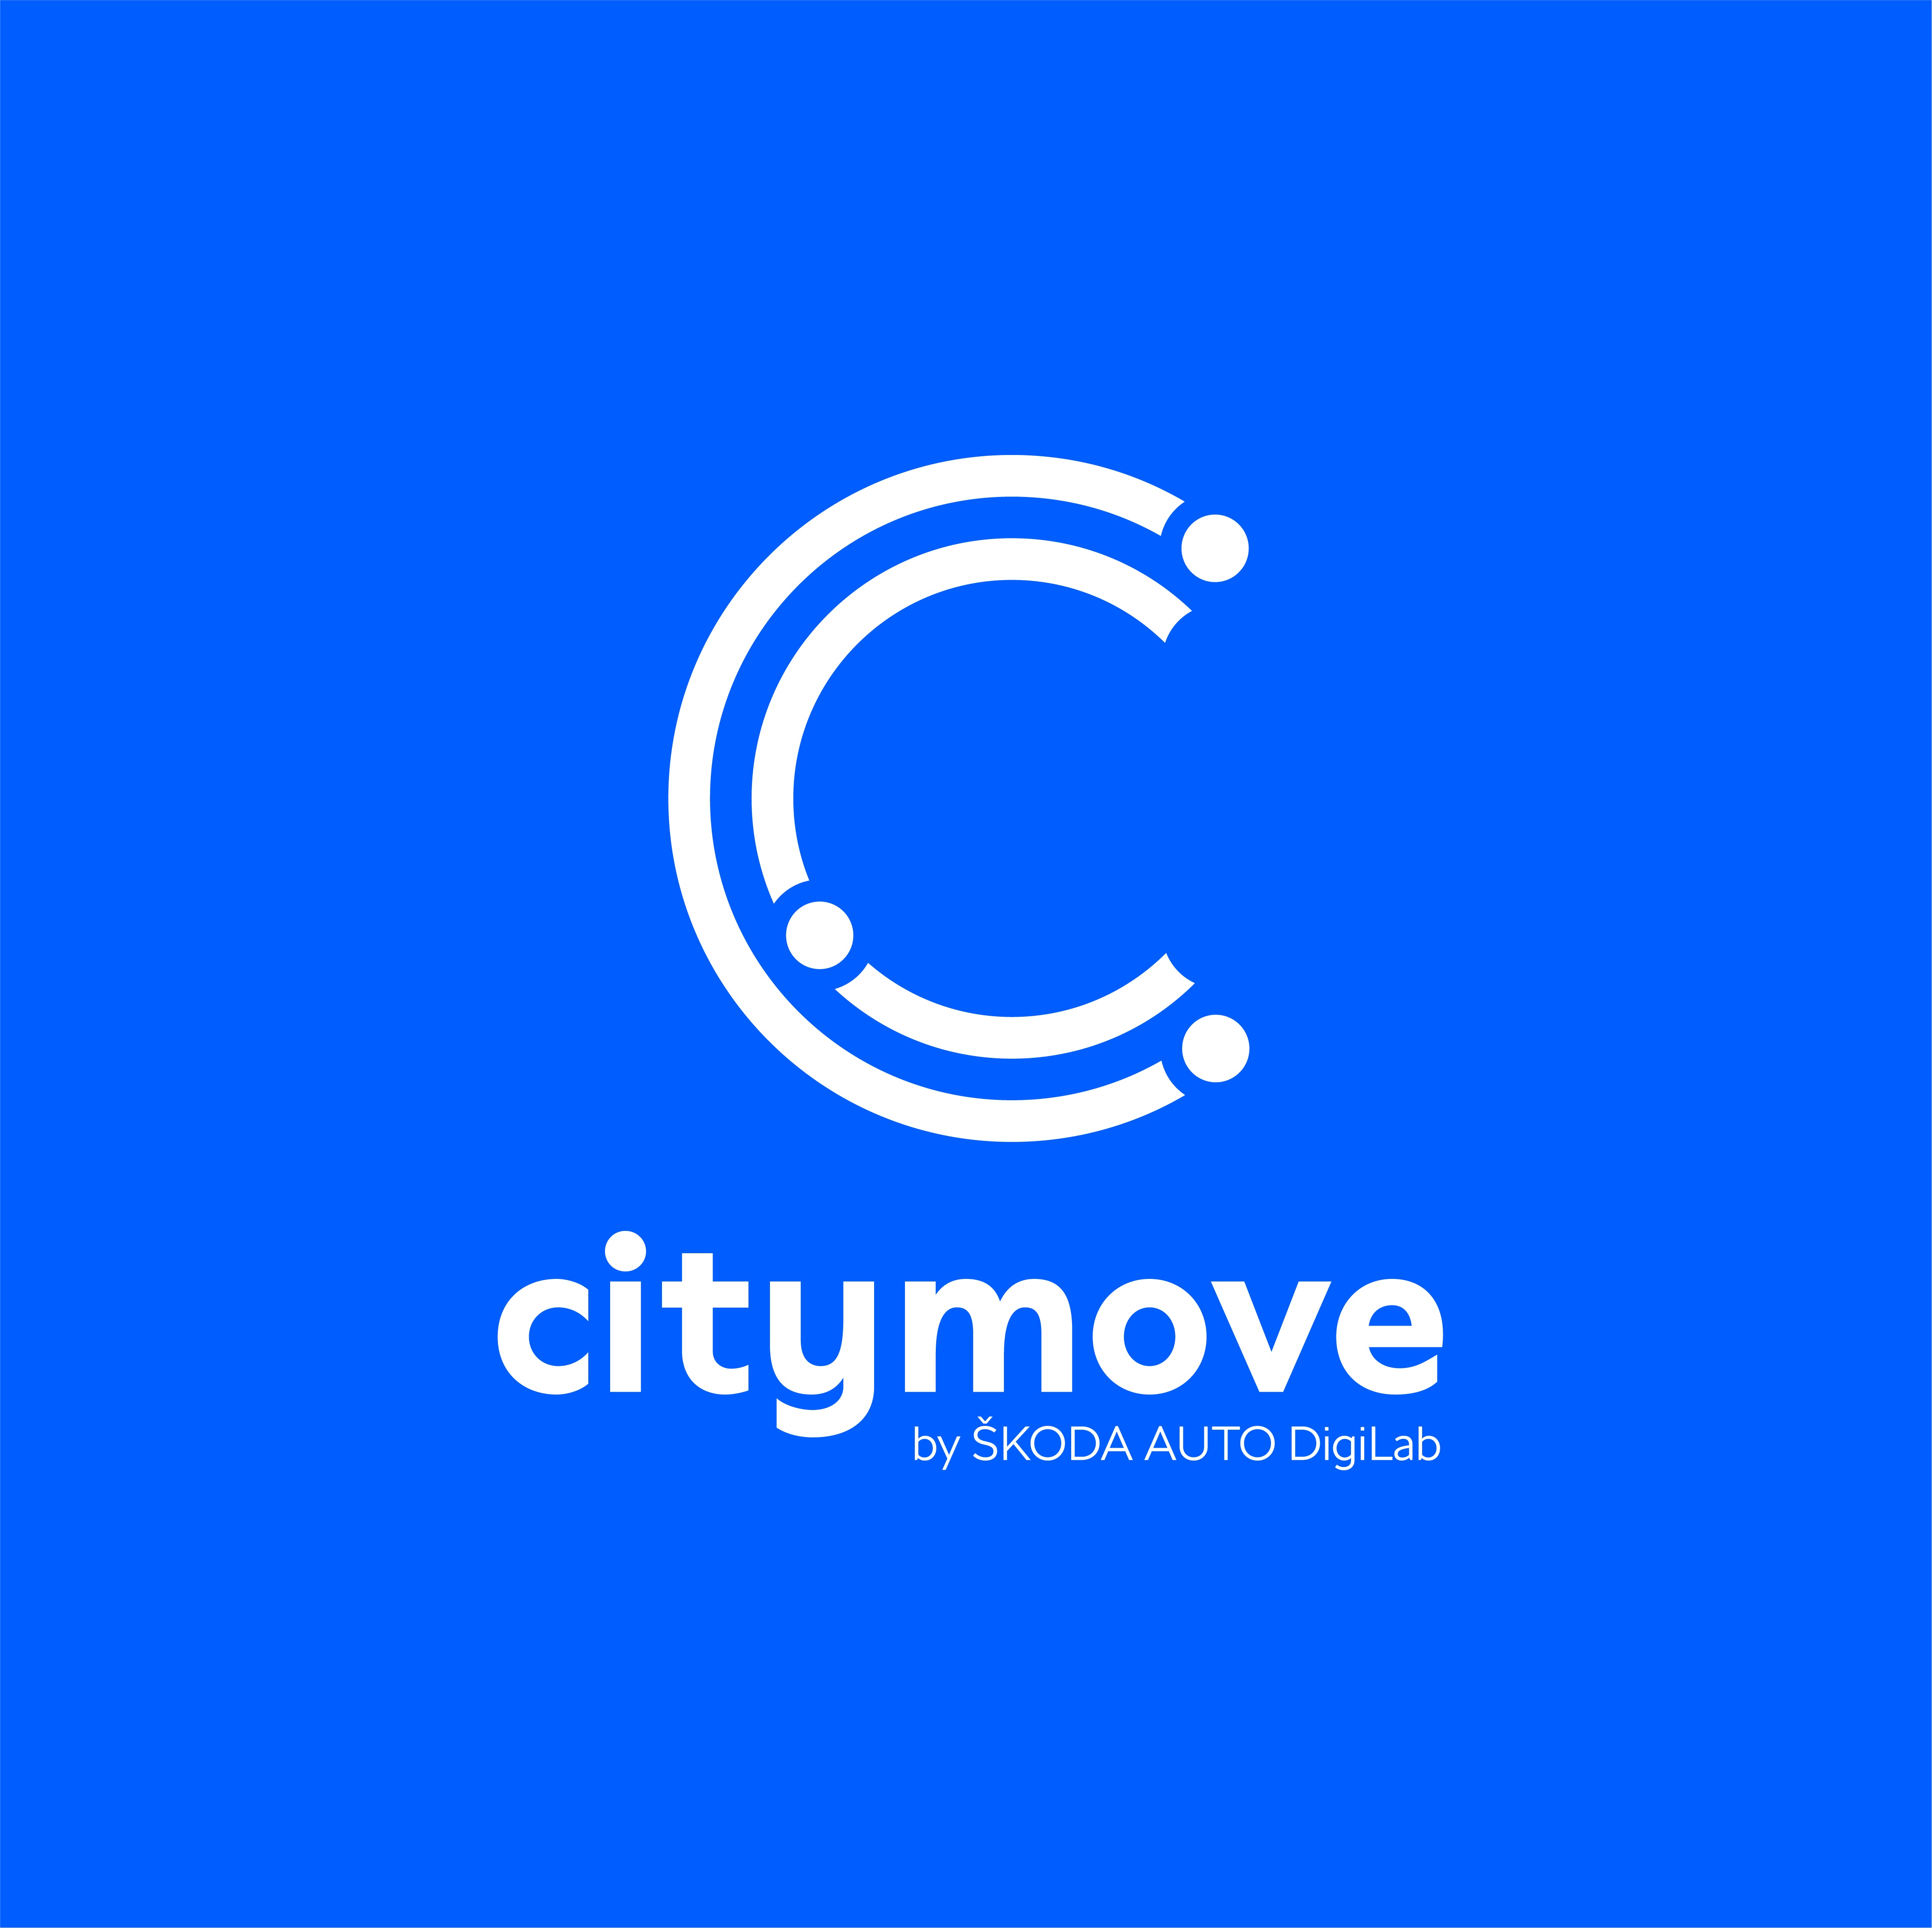 SKODA AUTO Citymove 2.0 app uses artificial intelligence to tailor customer offers and bring more benefits for users - Image 2